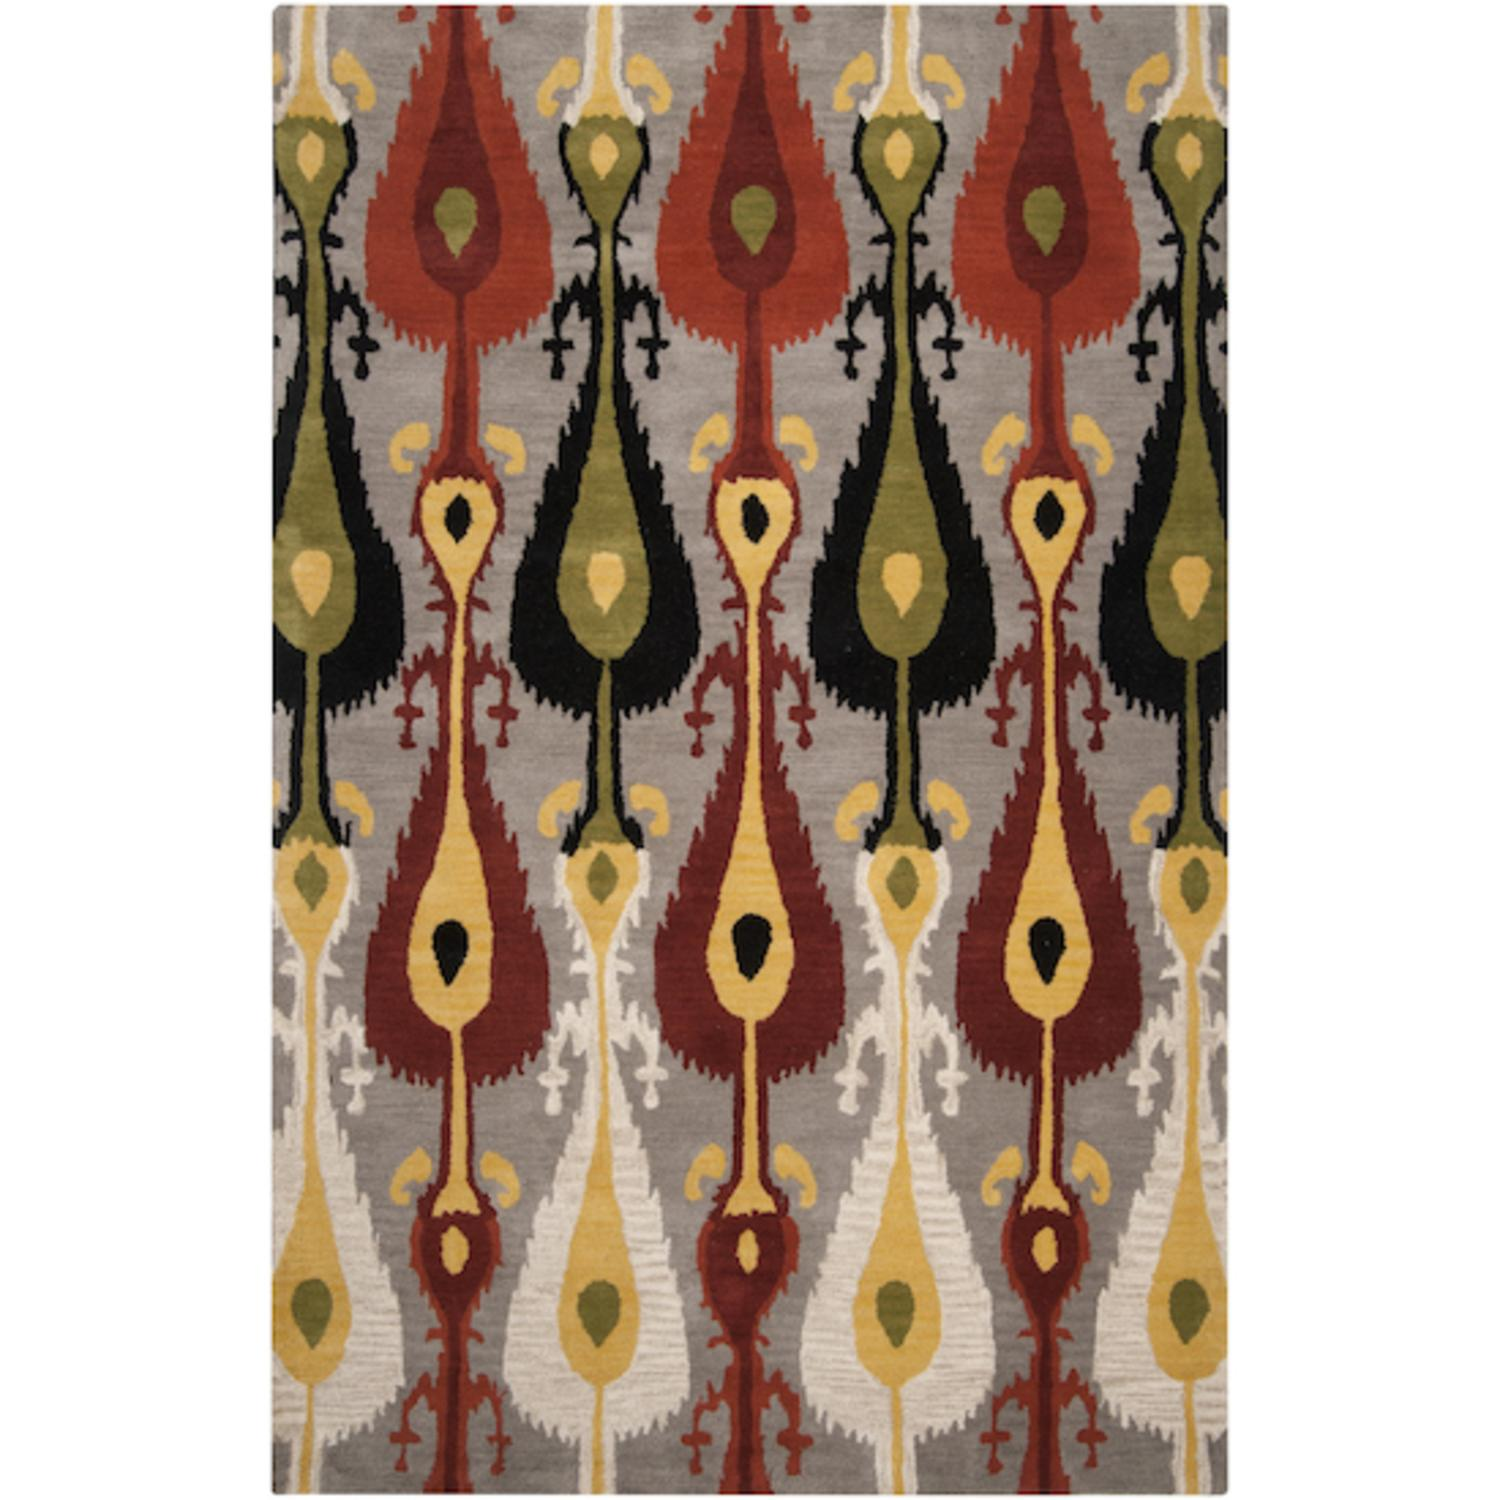 3.25' x 5.25' Arabian Mirage Avocado, Terra Cotta, Wheat and Black Wool Area Rug